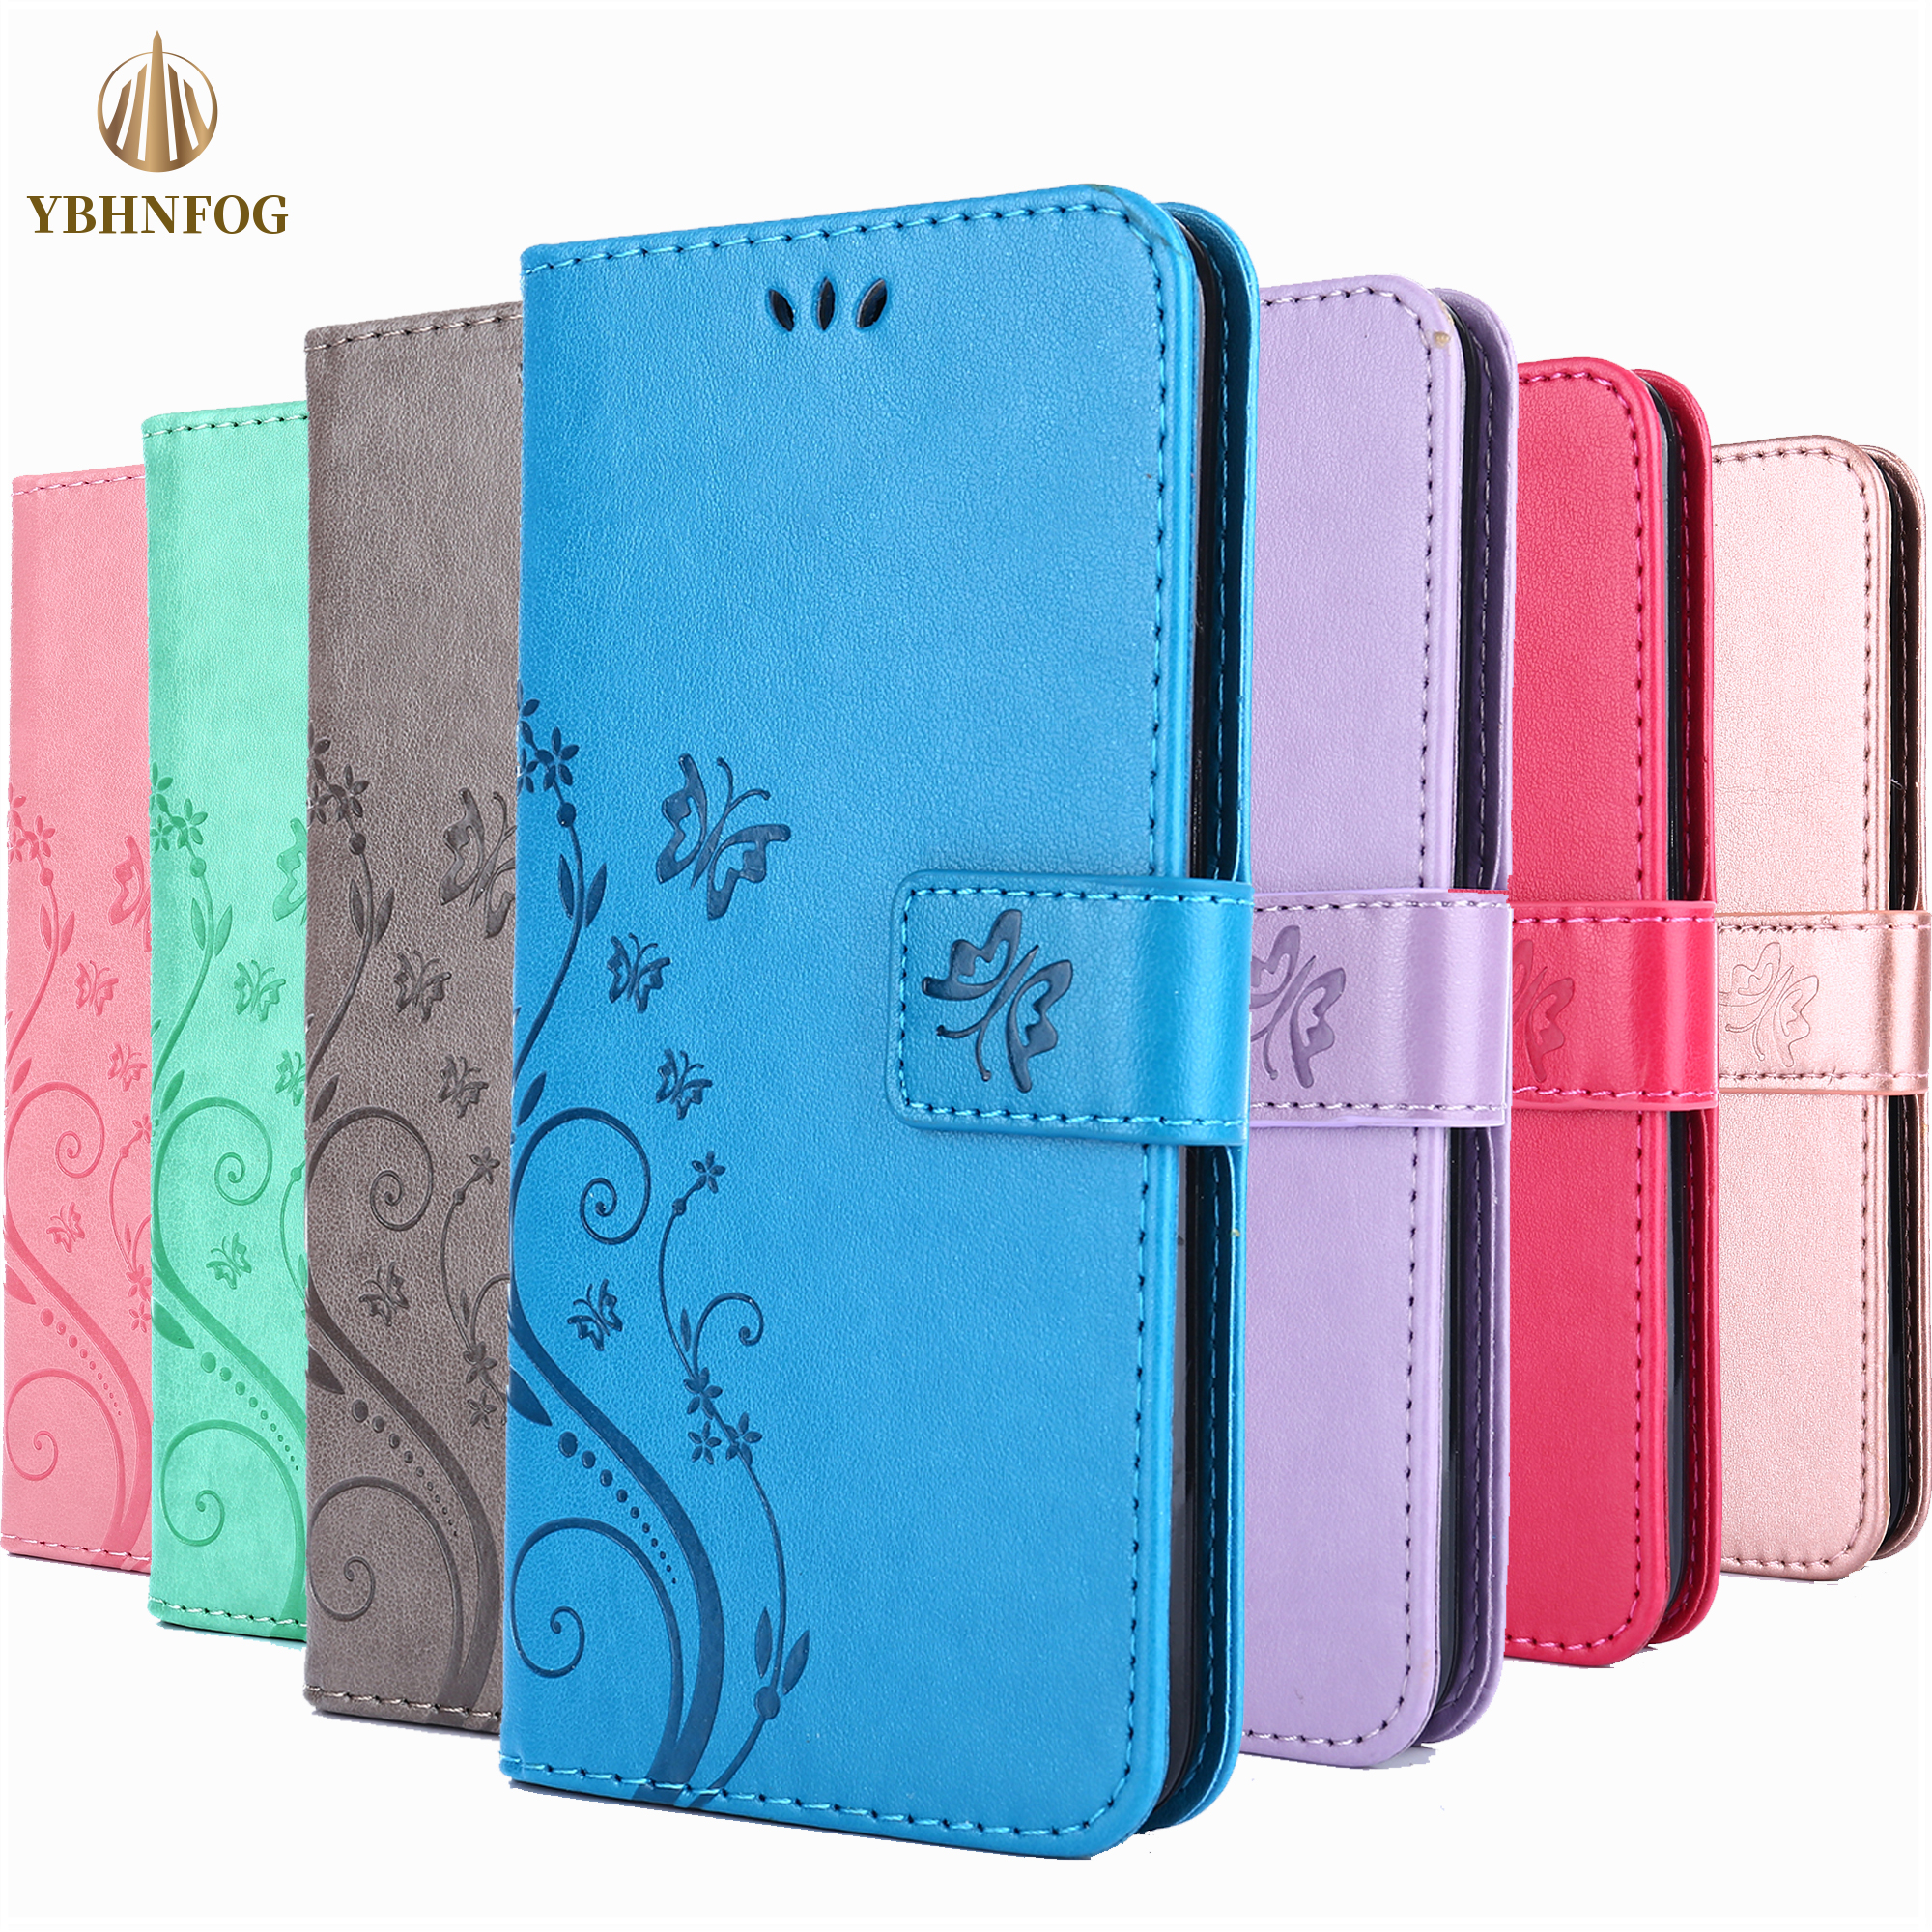 Luxury Flip Phone Case For iPhone 11 Pro XR XS Max X Leather Holder Standing For iPhone 6 6S 7 8 Plus 5 5S SE 2020 Wallet Cover